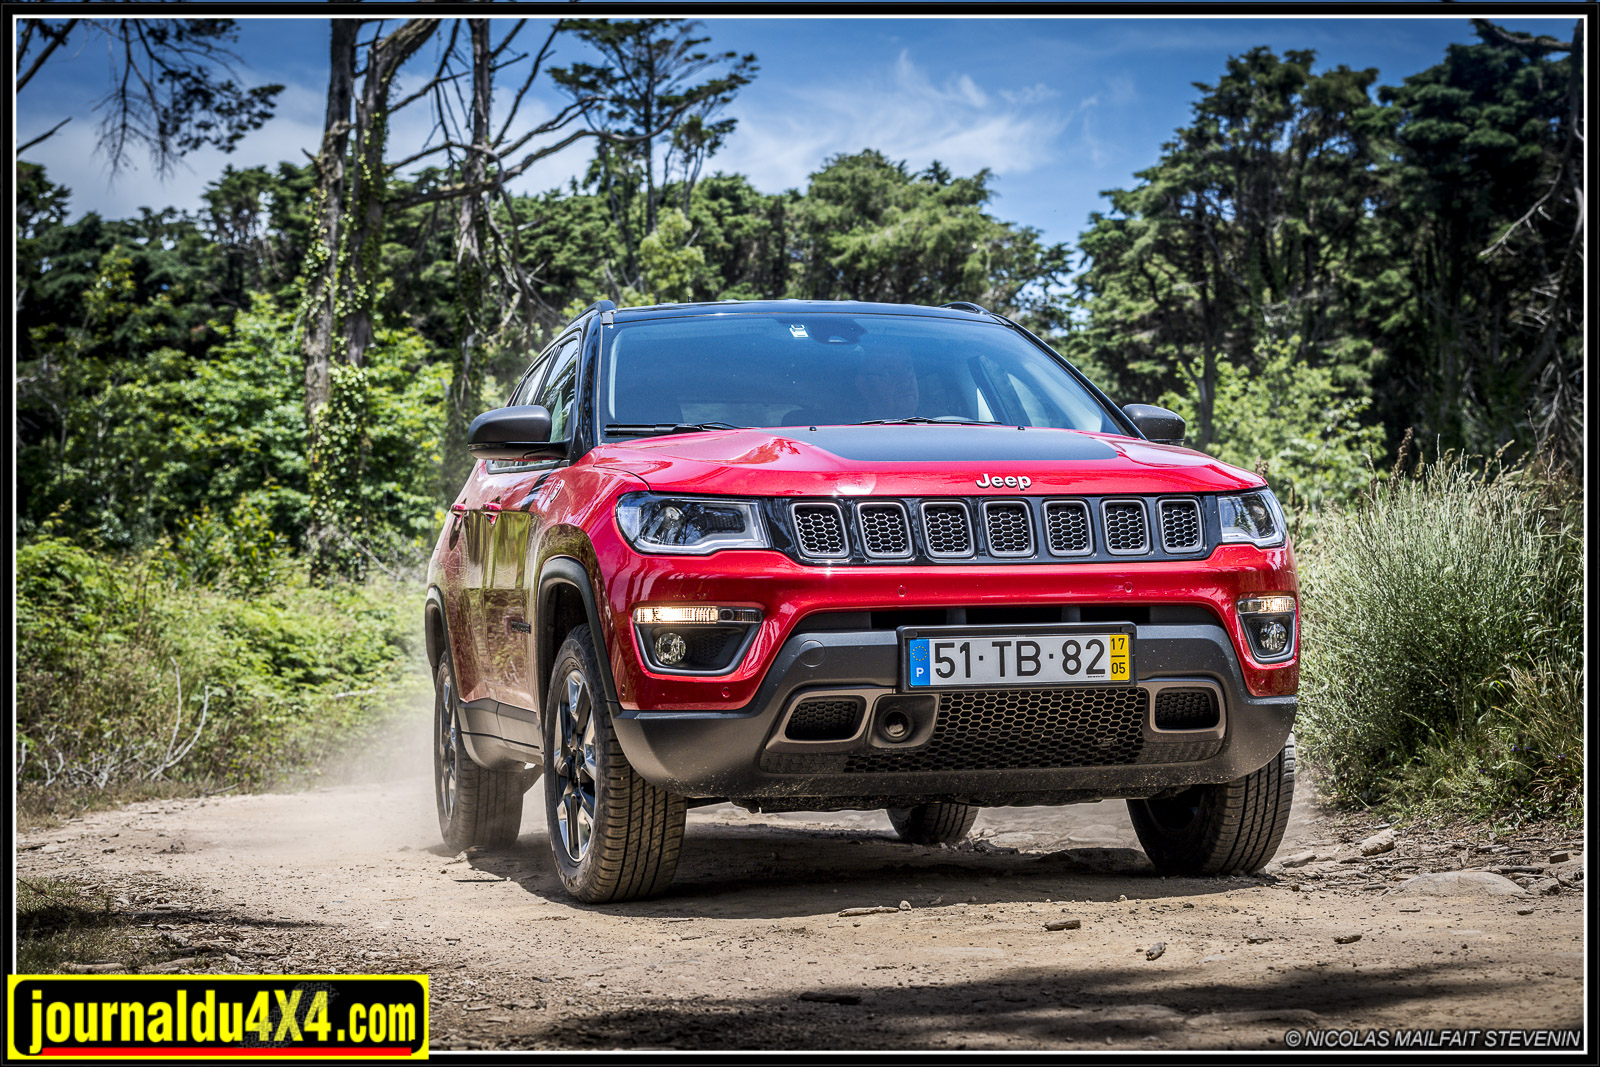 essai-test-jeep-compass-2017-5347.jpg